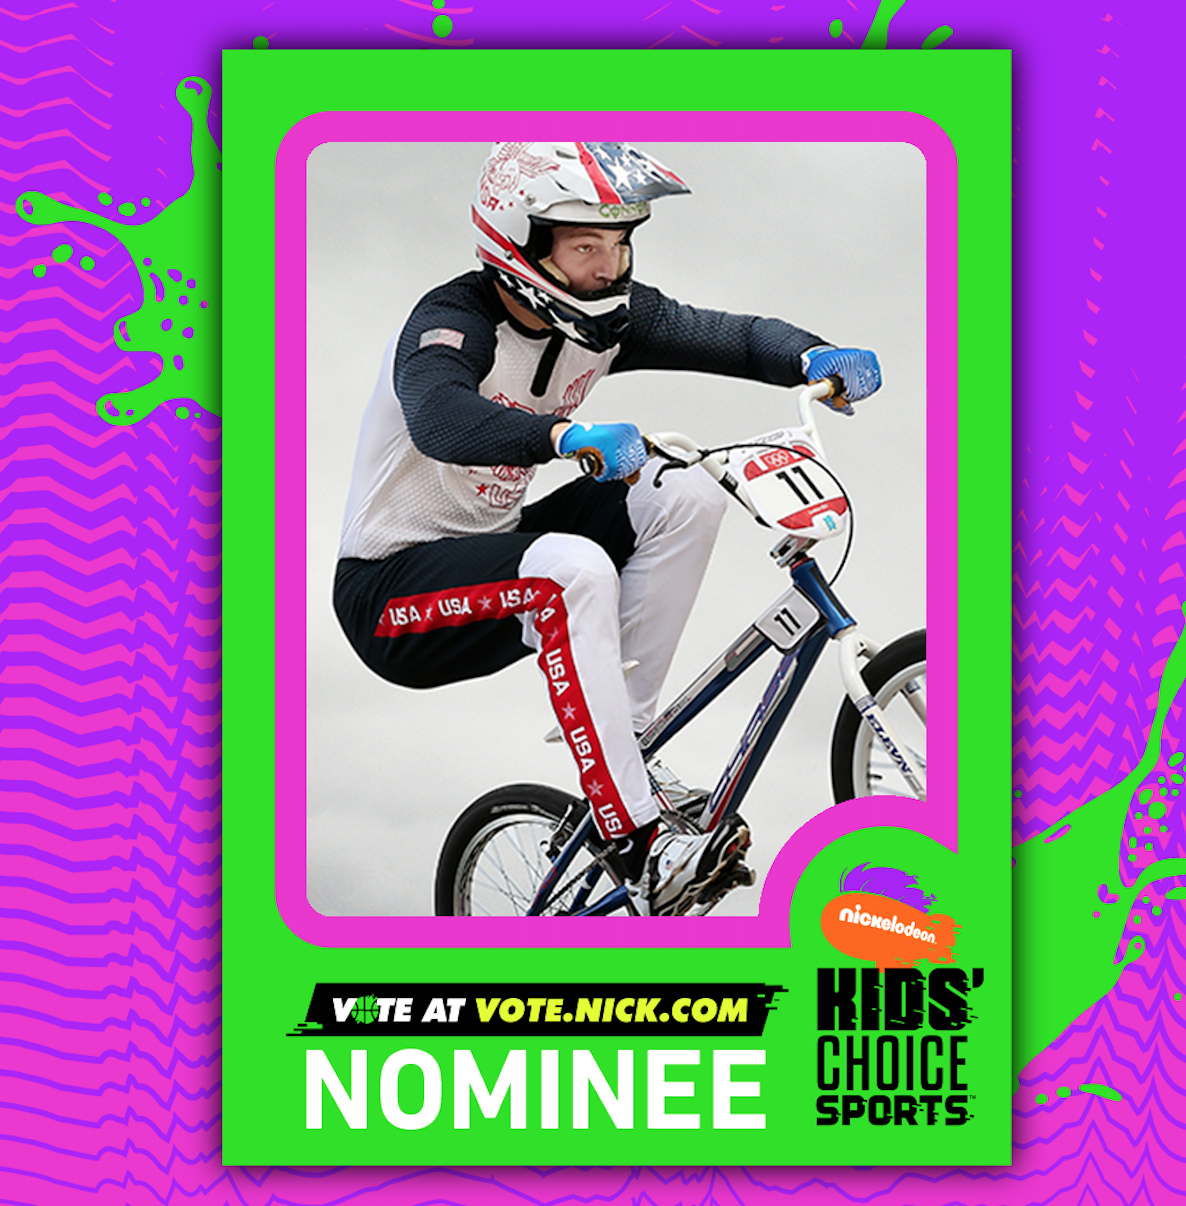 Nominated for a Nickelodeon Kids Choice Award in 2017